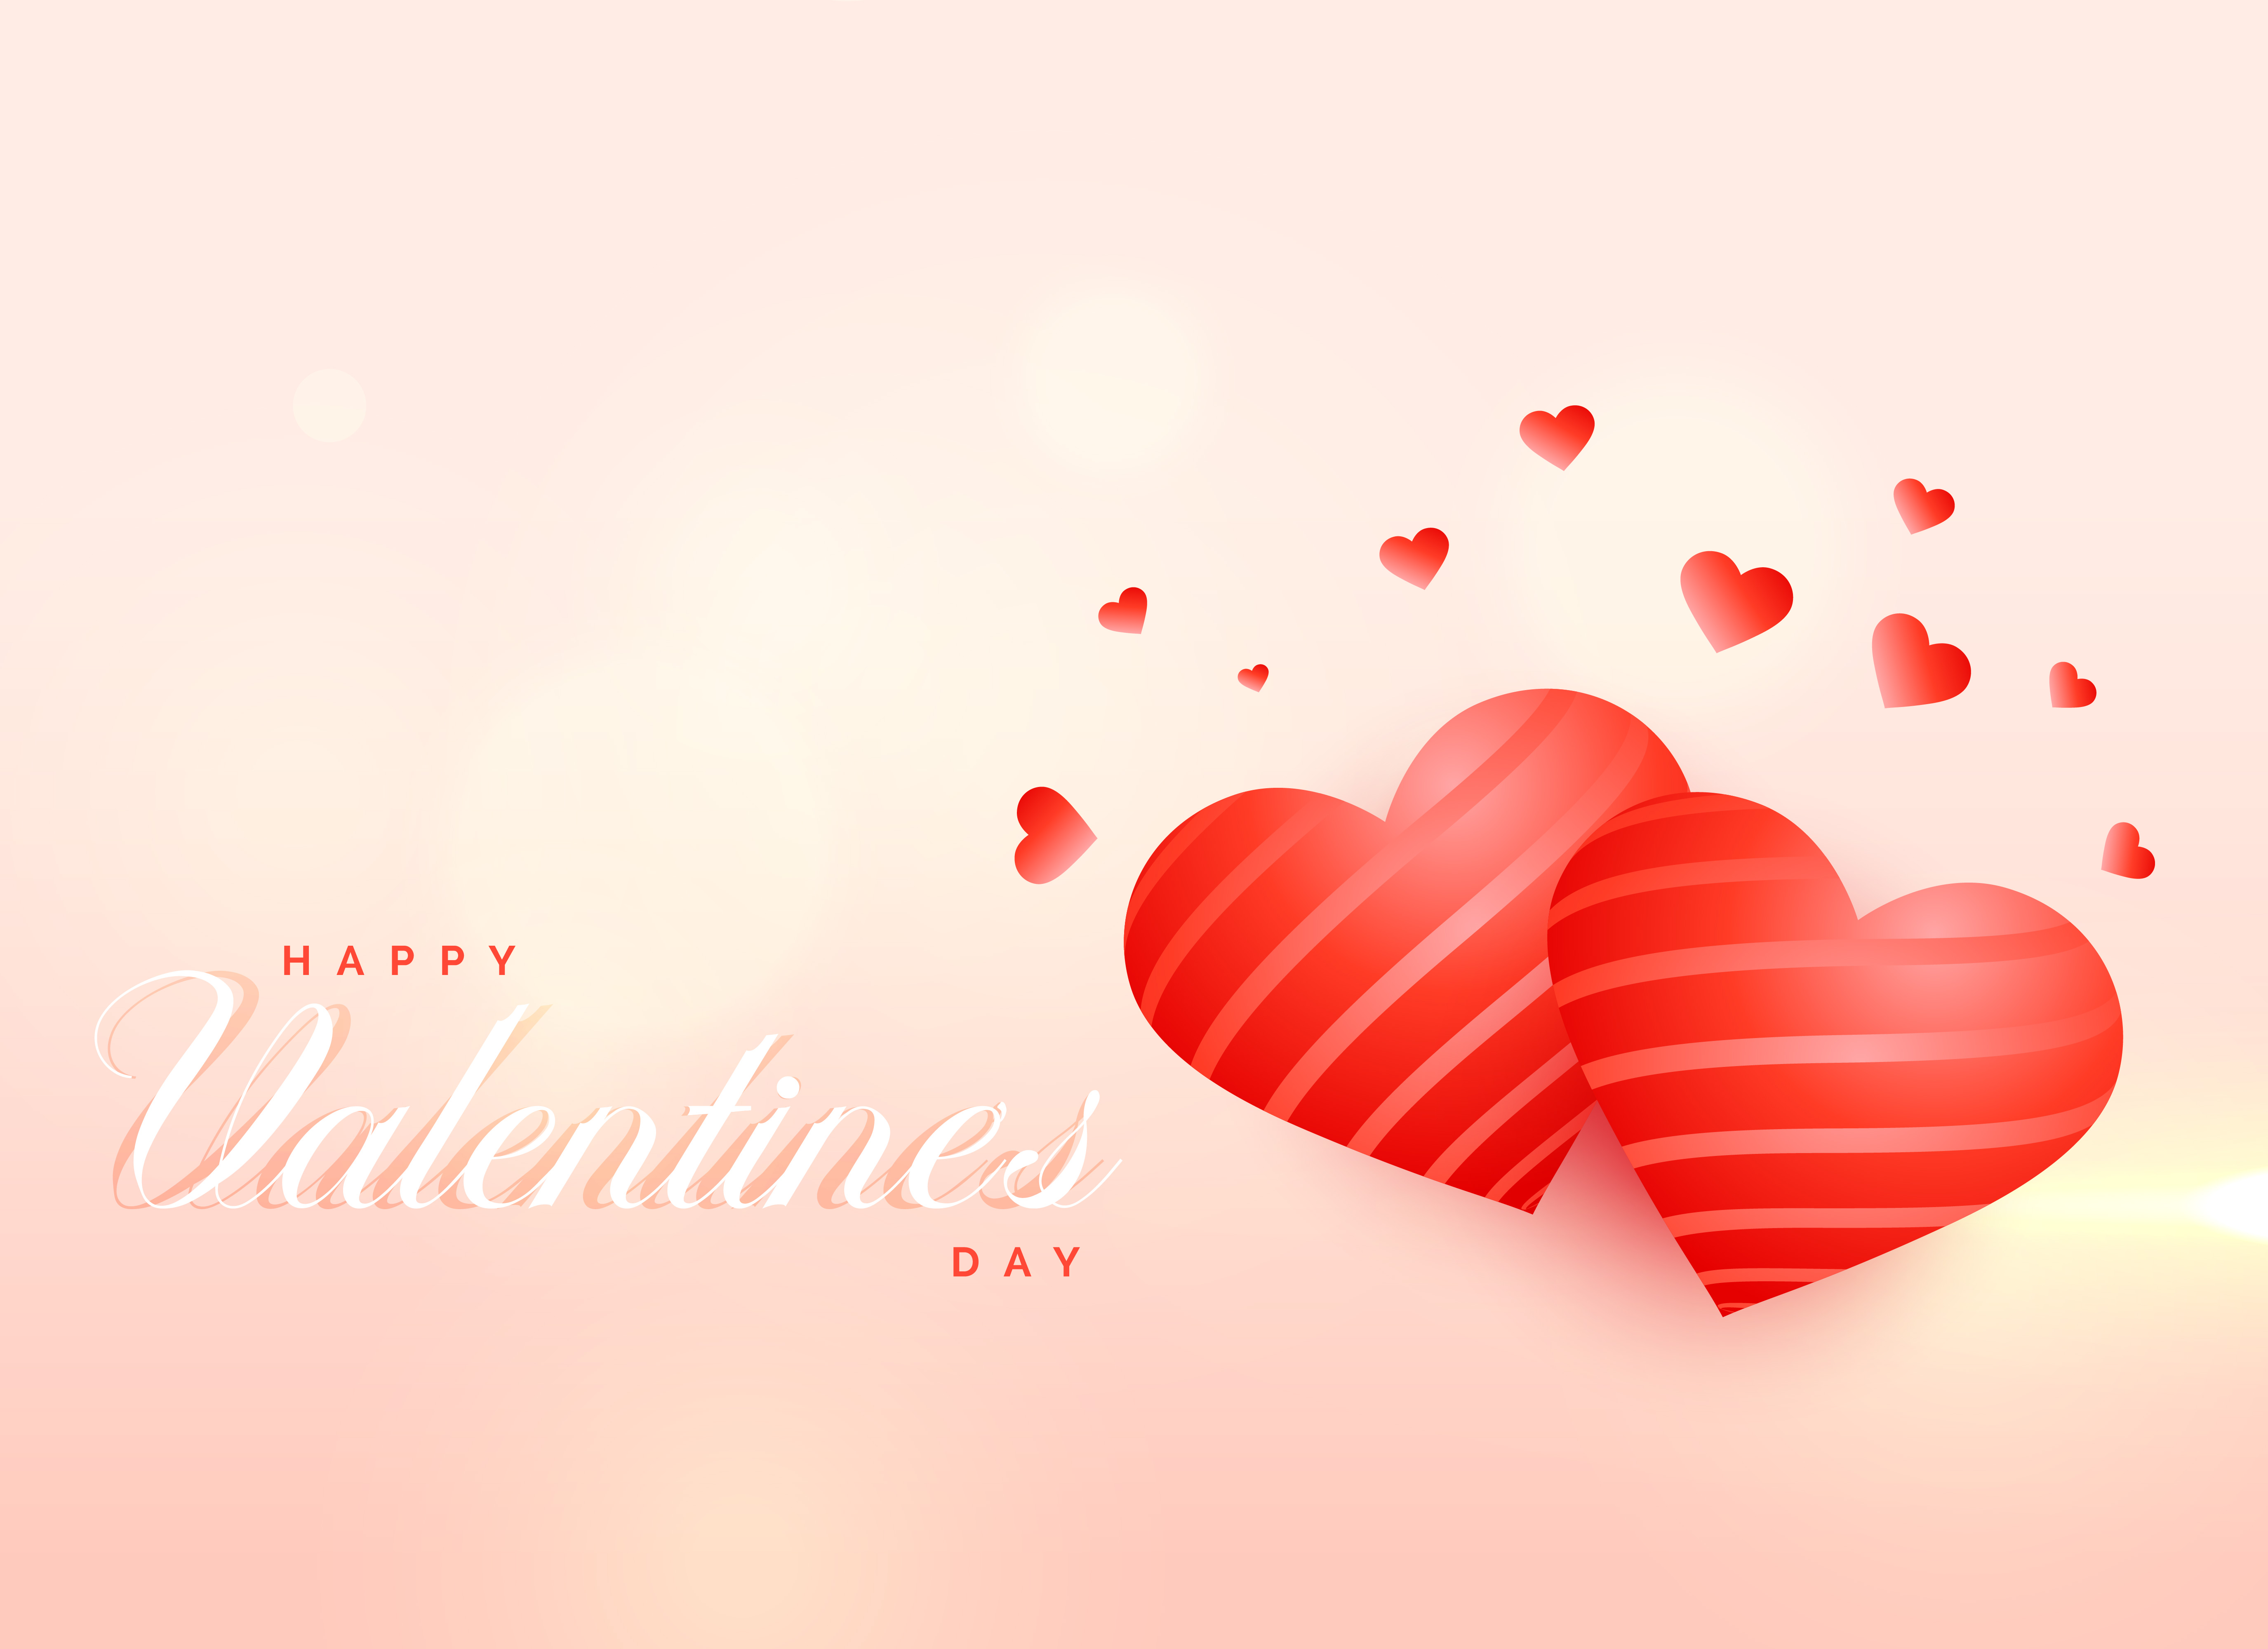 awesome love hearts background for valentine's day - download free